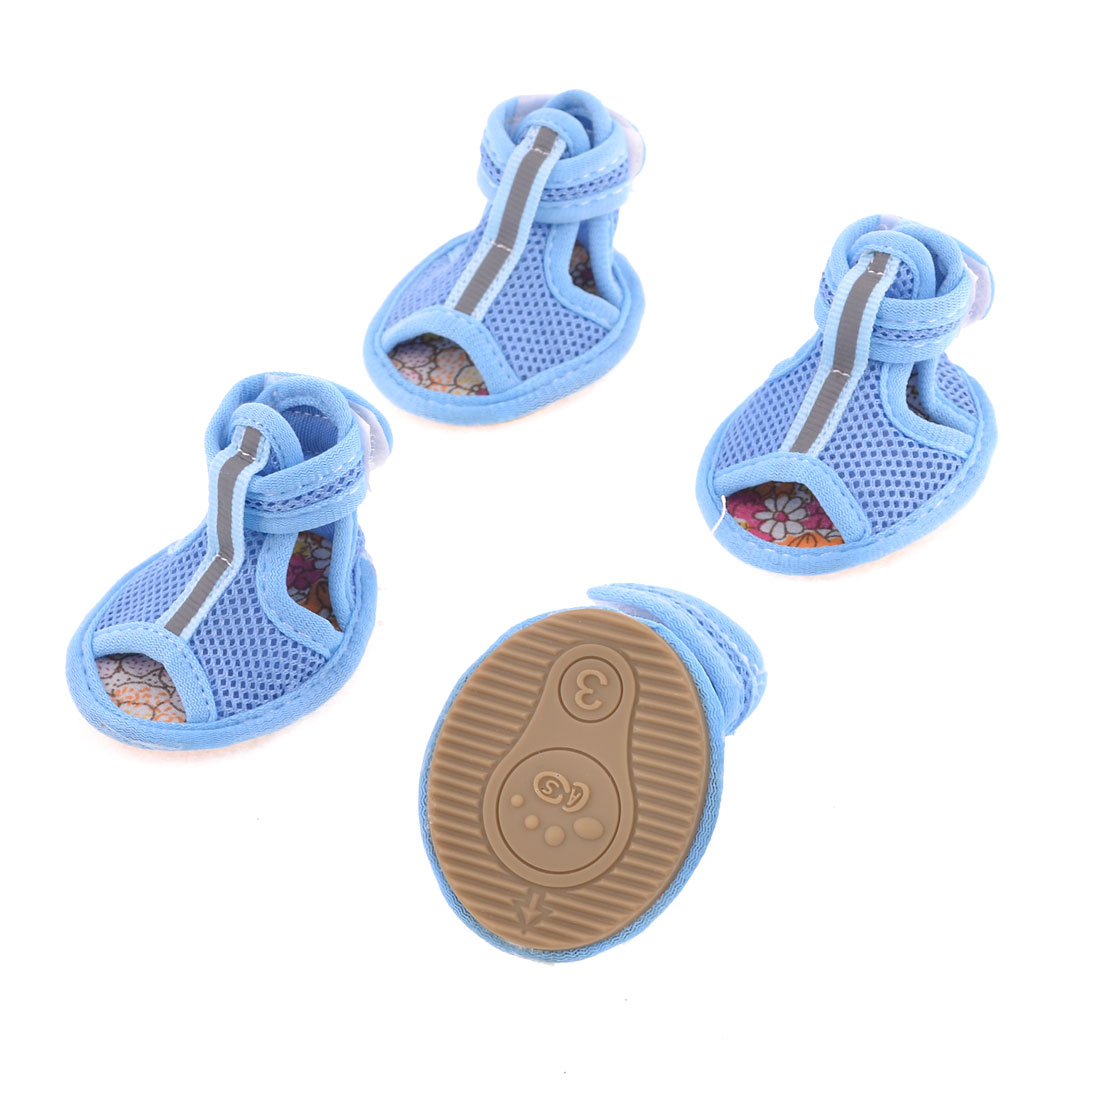 Rubber Sole Blue Mesh Sandals Yorkie Chihuaha Dog Shoes 2 Pairs Size 3